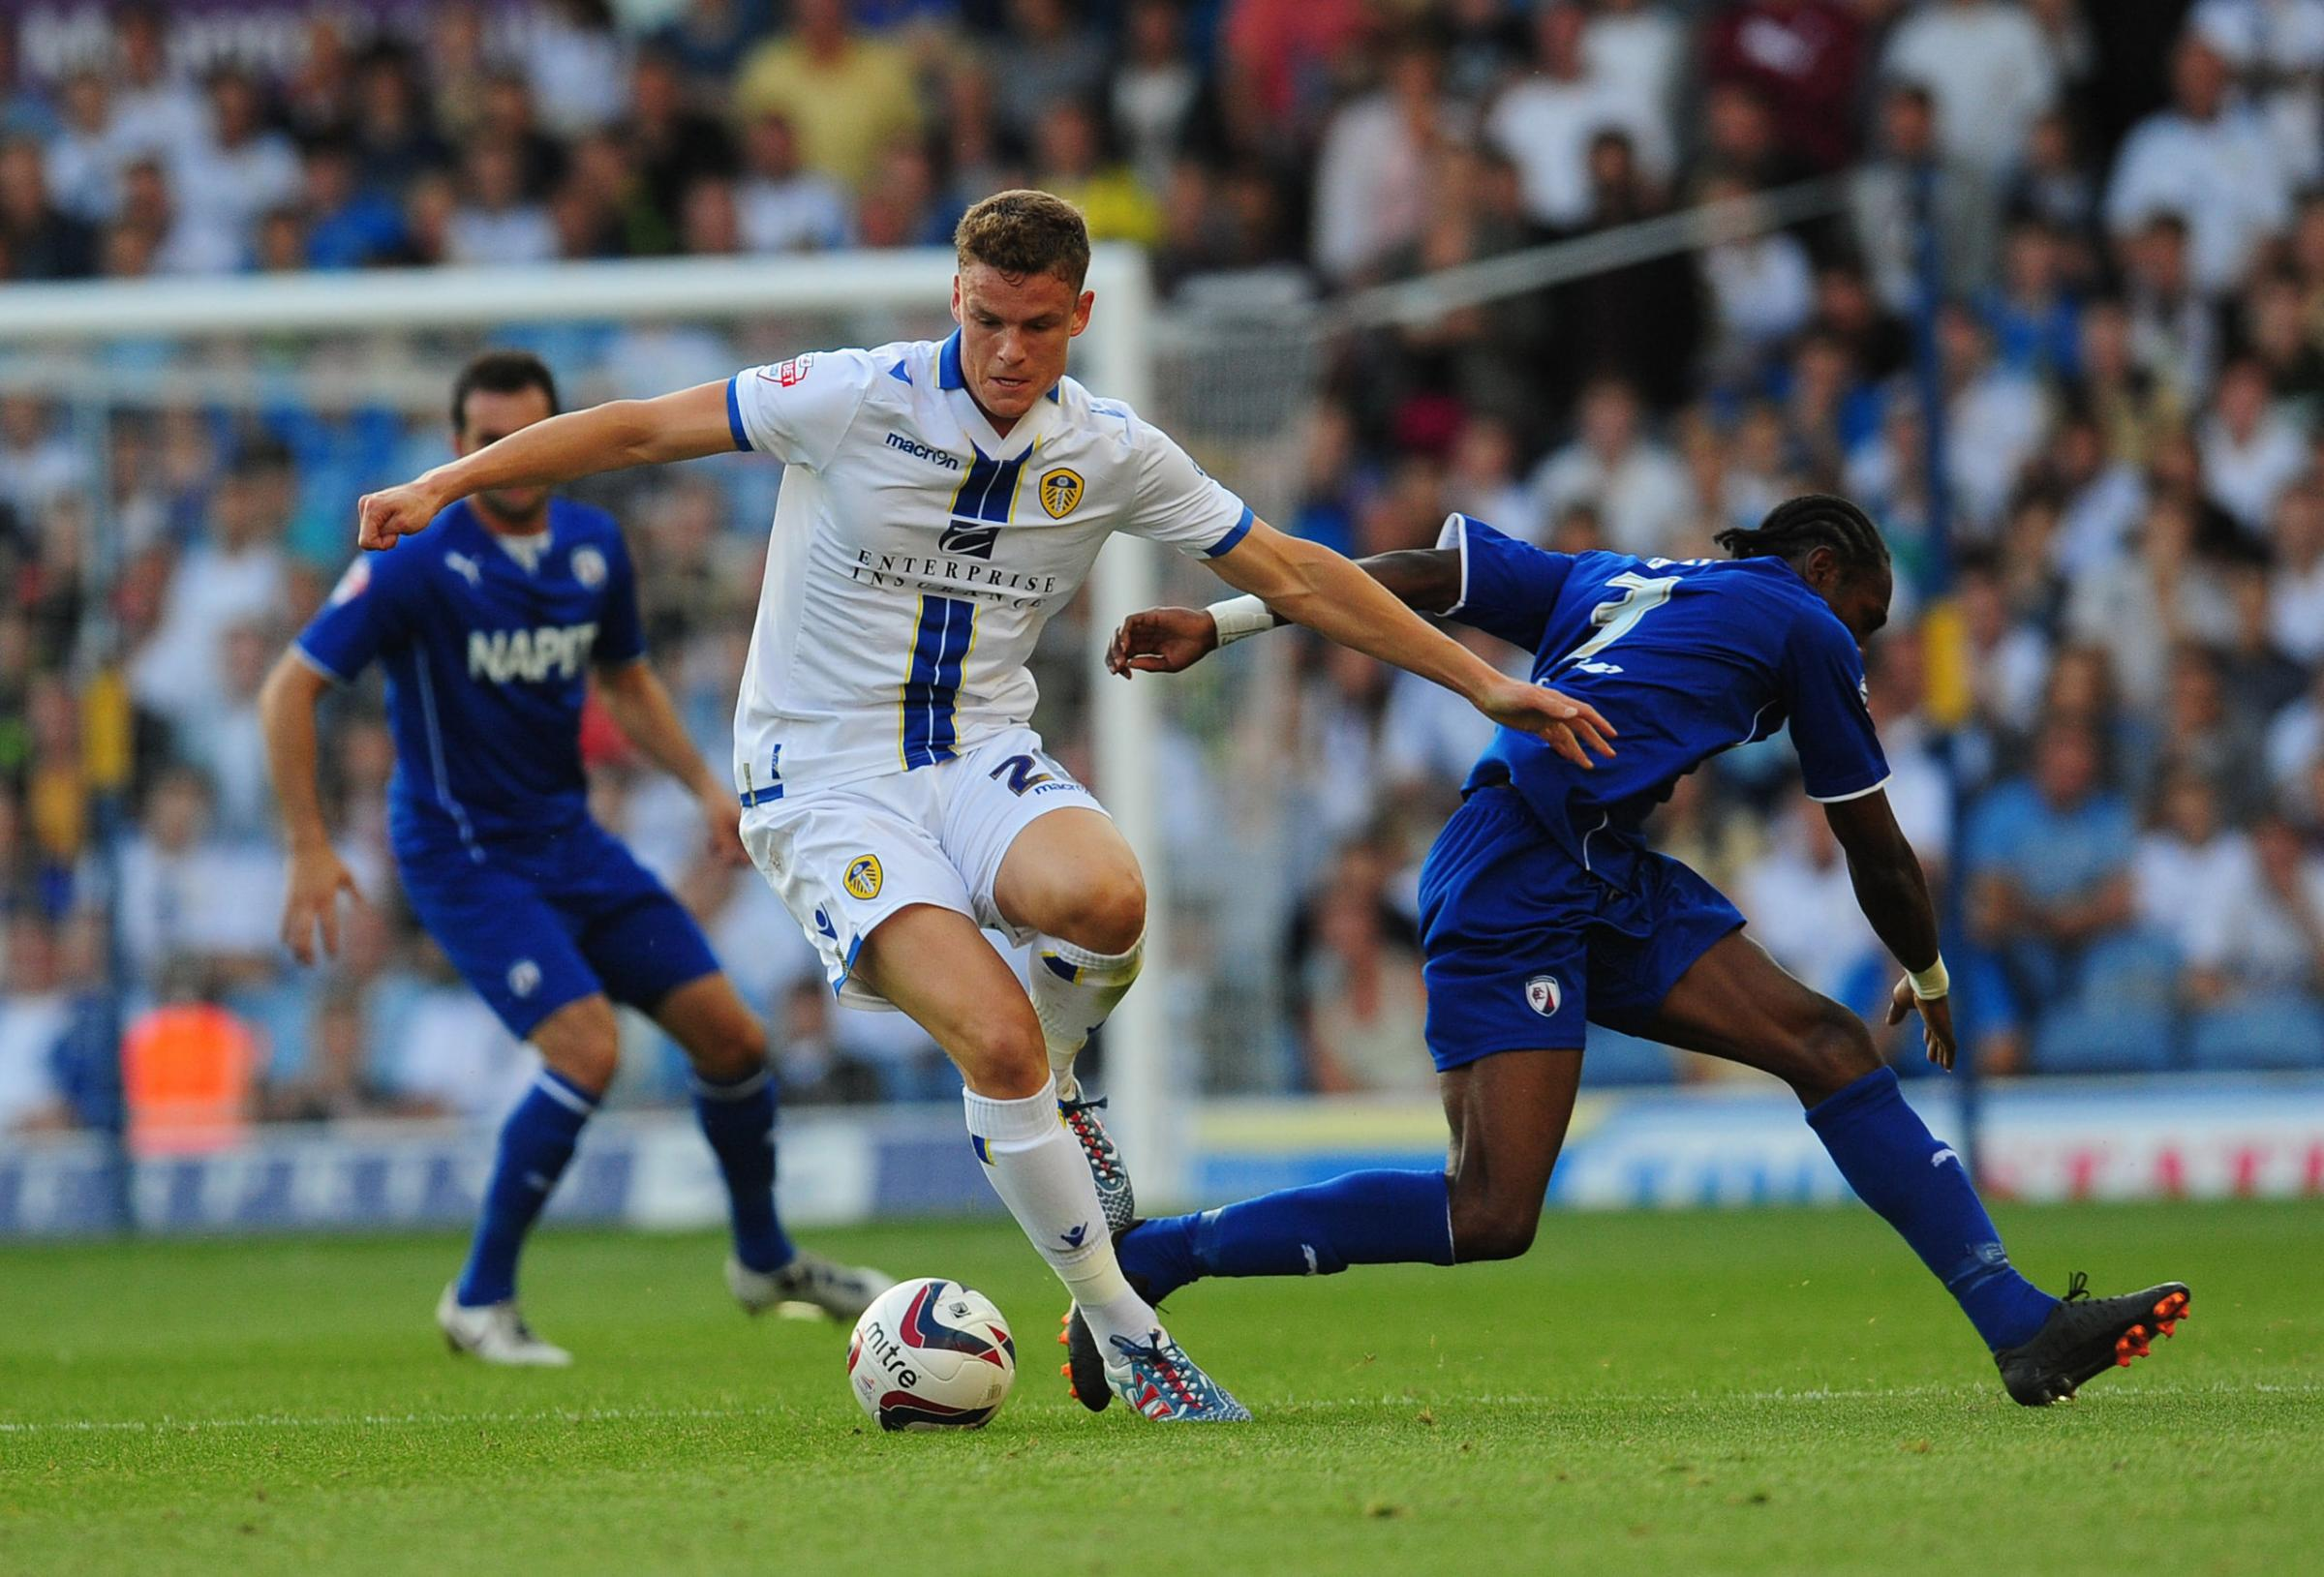 Matt Smith scored six second-half goals in Leeds' opening pre-season match